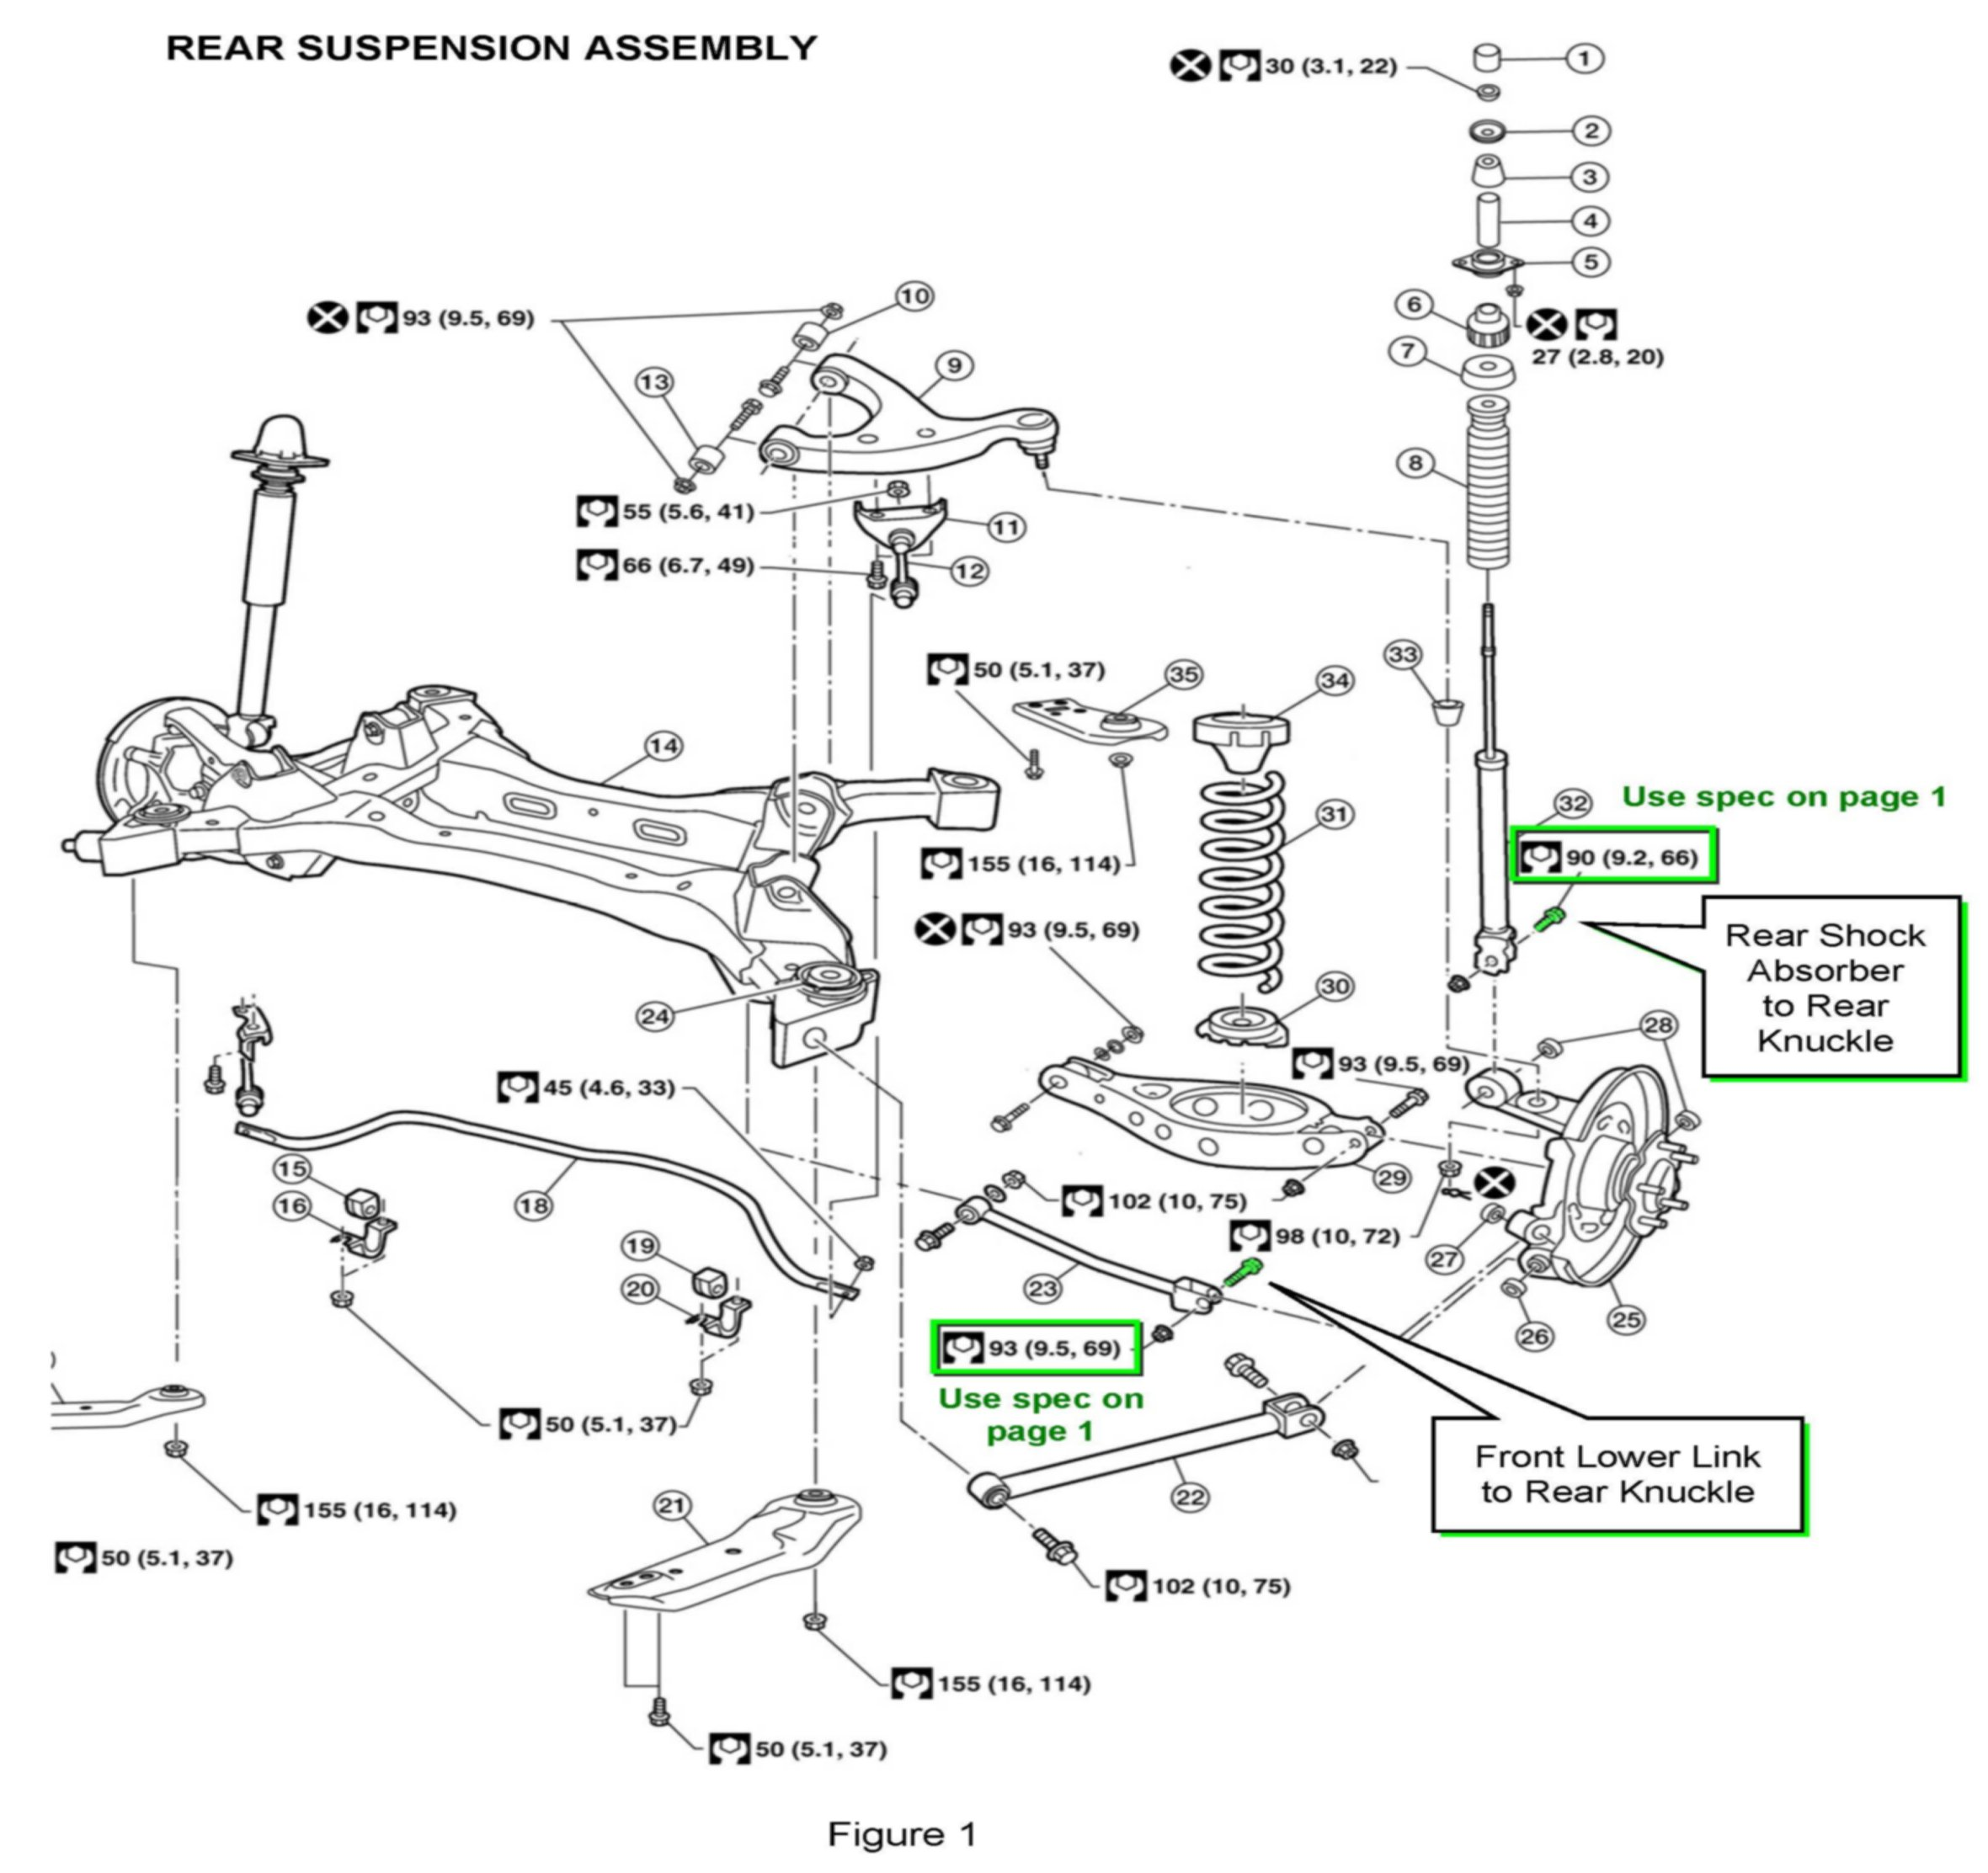 Steering Knuckle Diagram on ford ranger exhaust system diagram